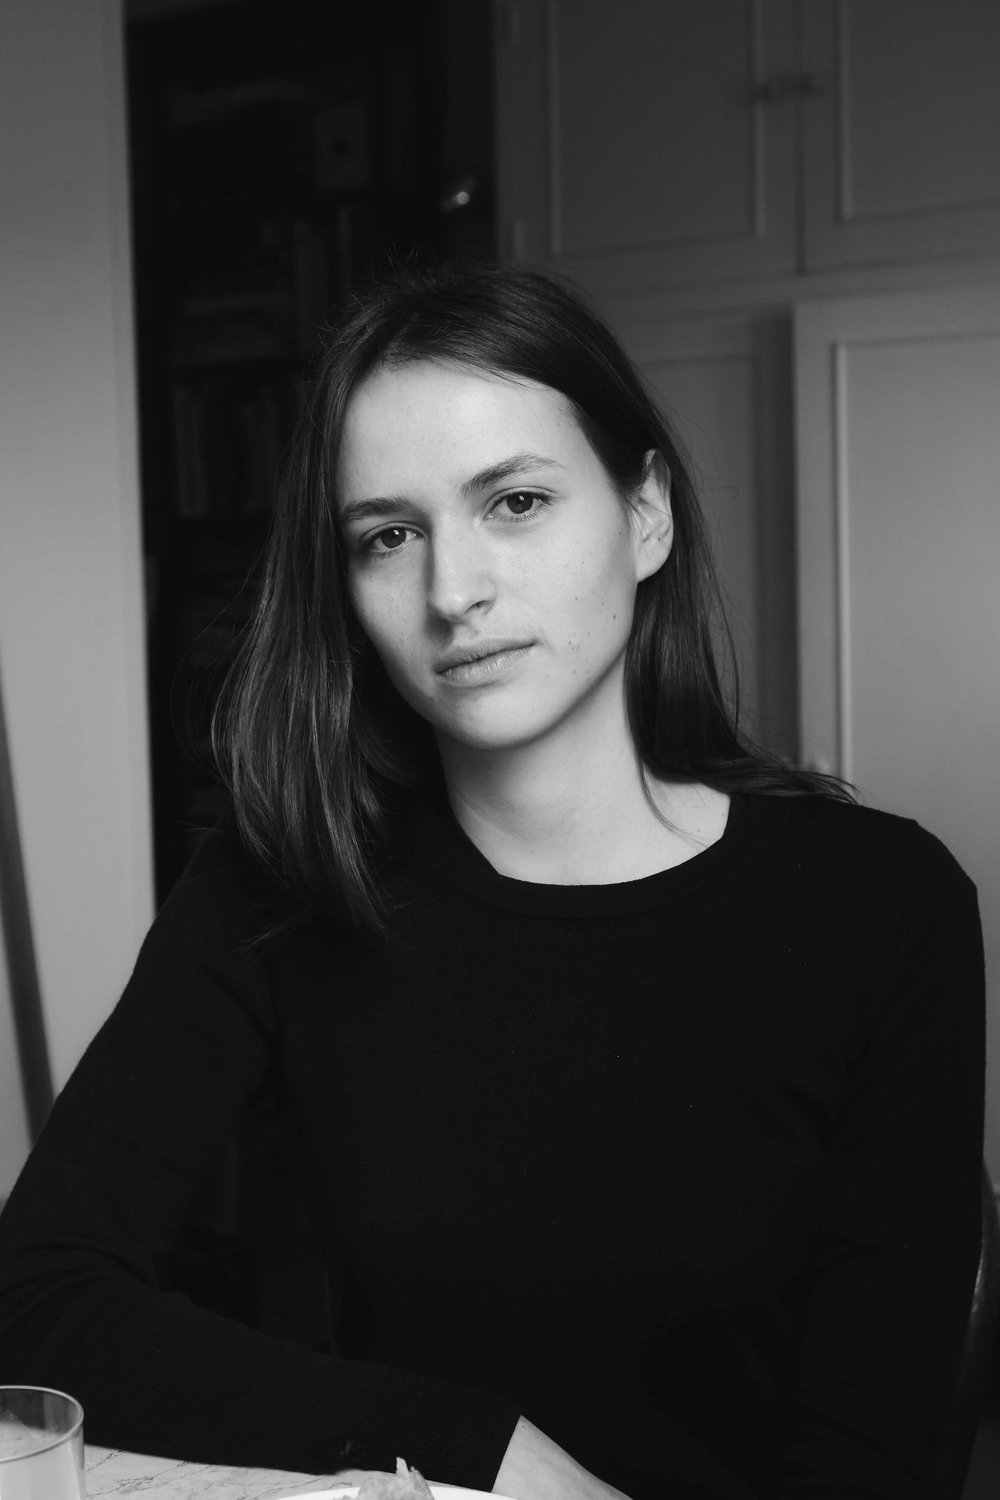 Julie_richoz_by_Stephanie_Füssenich B&W.jpg